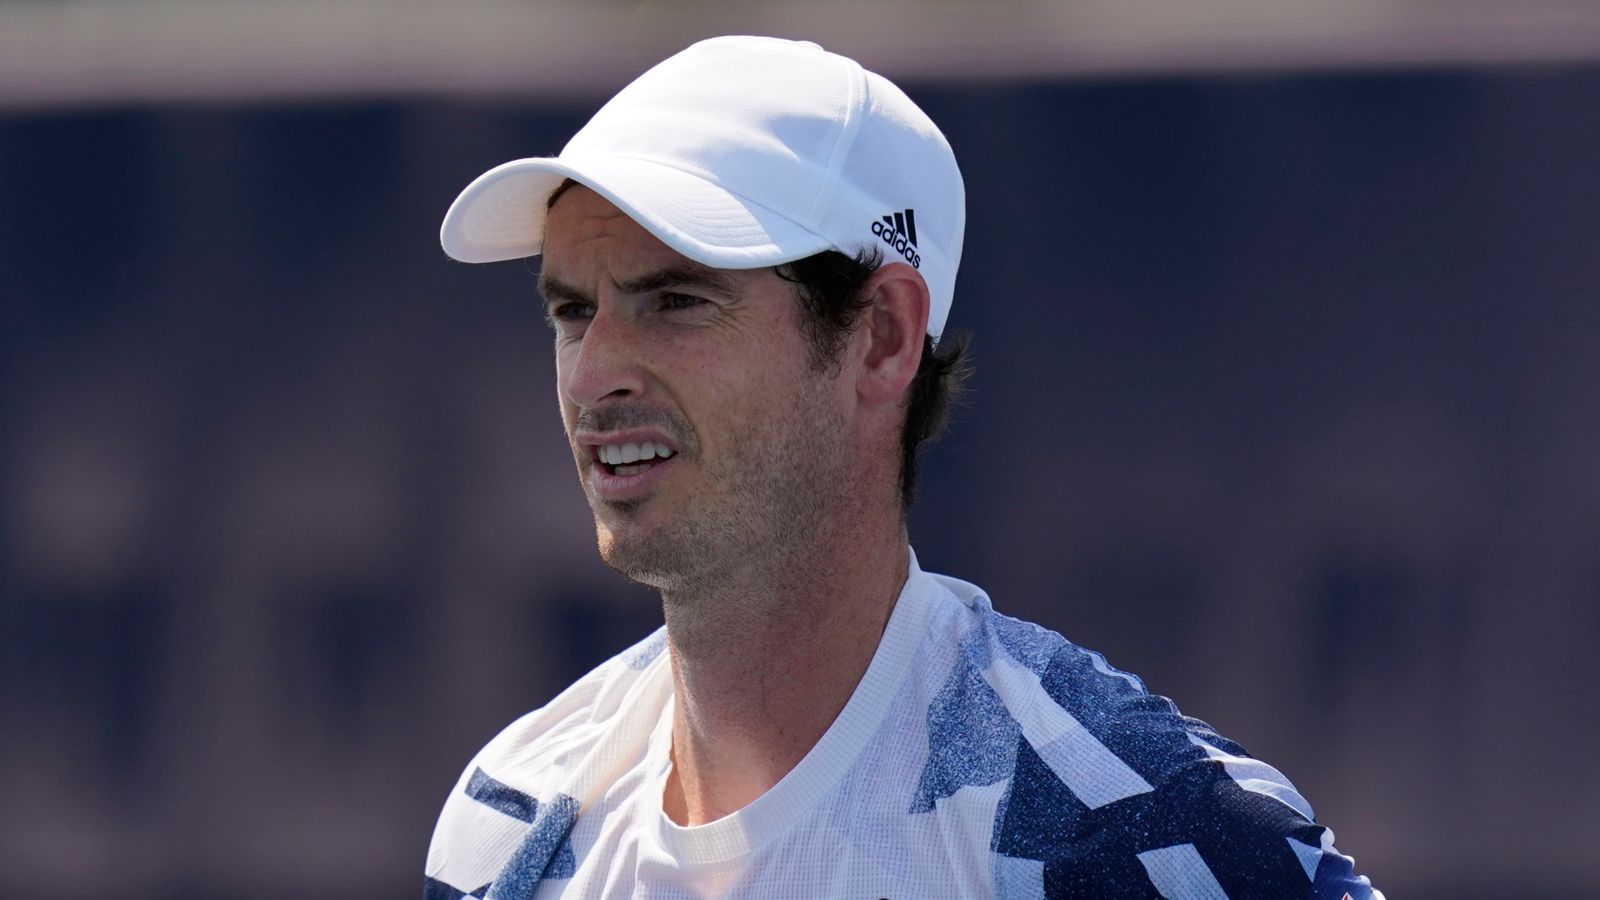 Tokyo 2020 Olympics: Defending champion Andy Murray withdraws from singles; continues in doubles